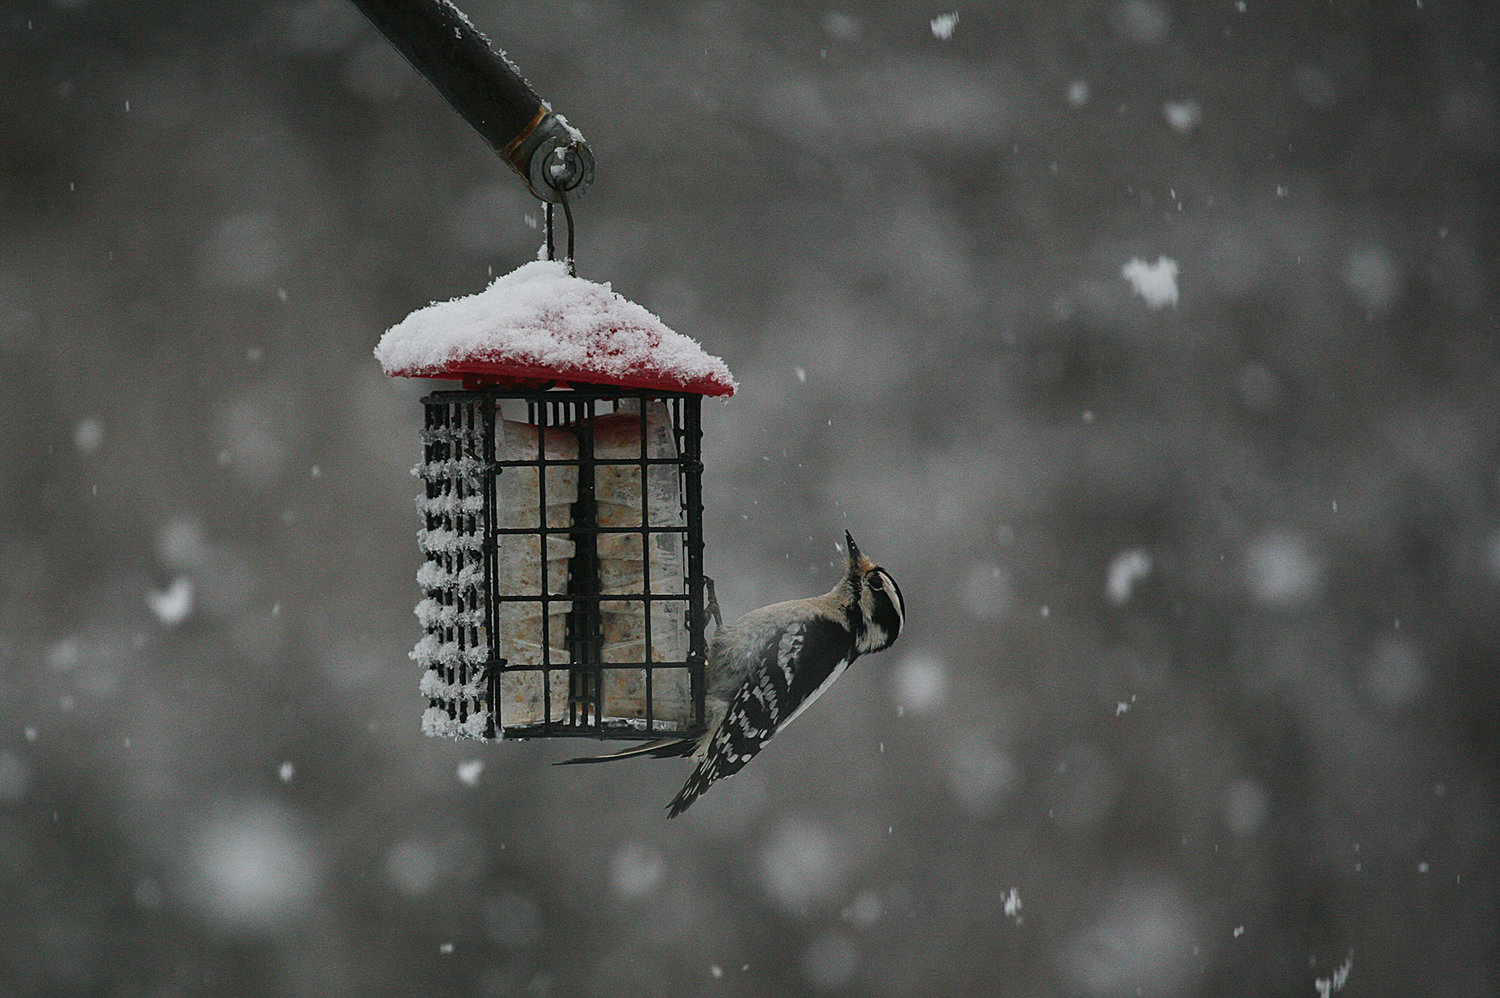 WINTER SCENES -- February 7, 2021 -- A woodpecker feasts at a feeder during Sunday's snow storm. Photo by Ray K. Saunders